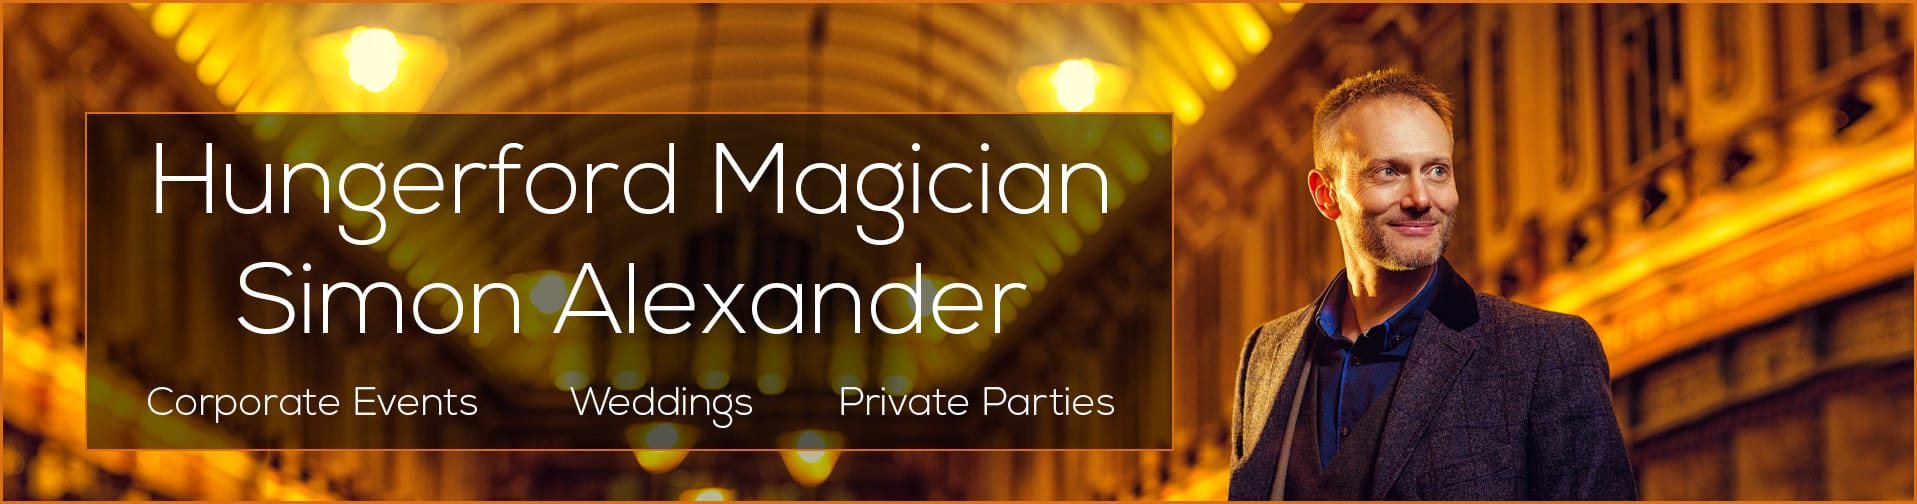 Magician in Hungerford Banner